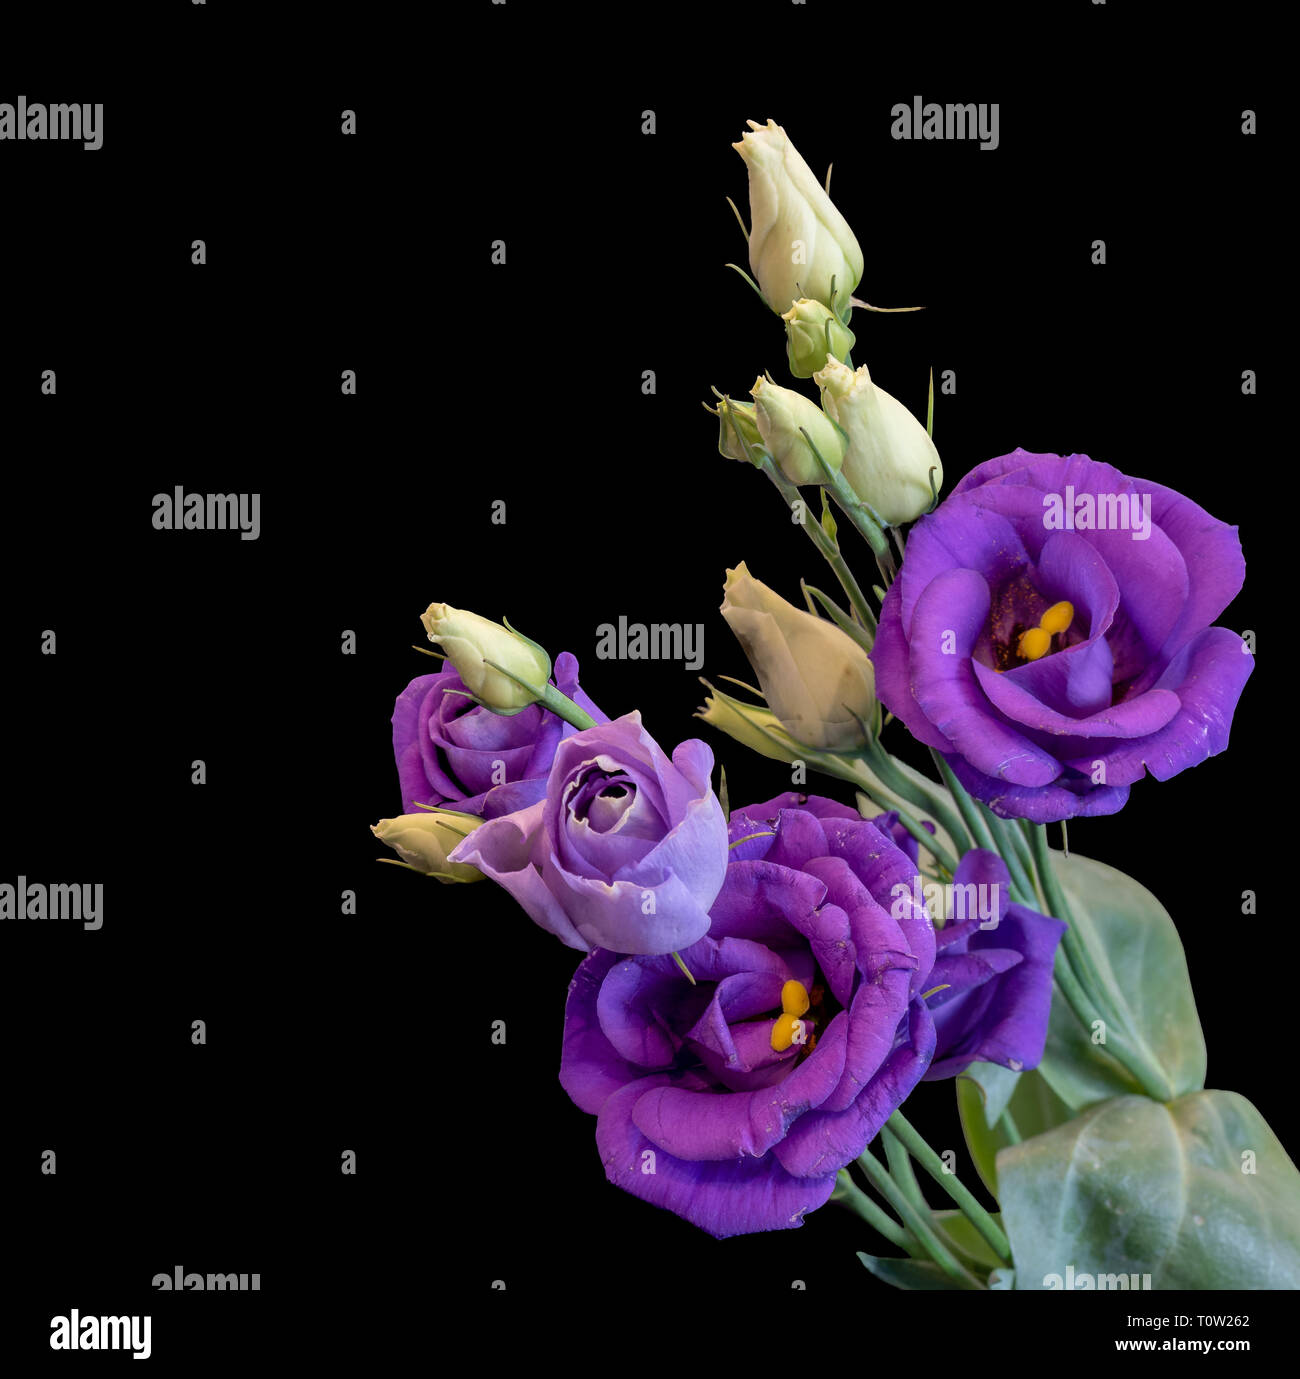 Fine art still life color macro of a bunch of violet blue lisianthus / showy prairie gentian / texas bluebell blossoms on black background with detail - Stock Image